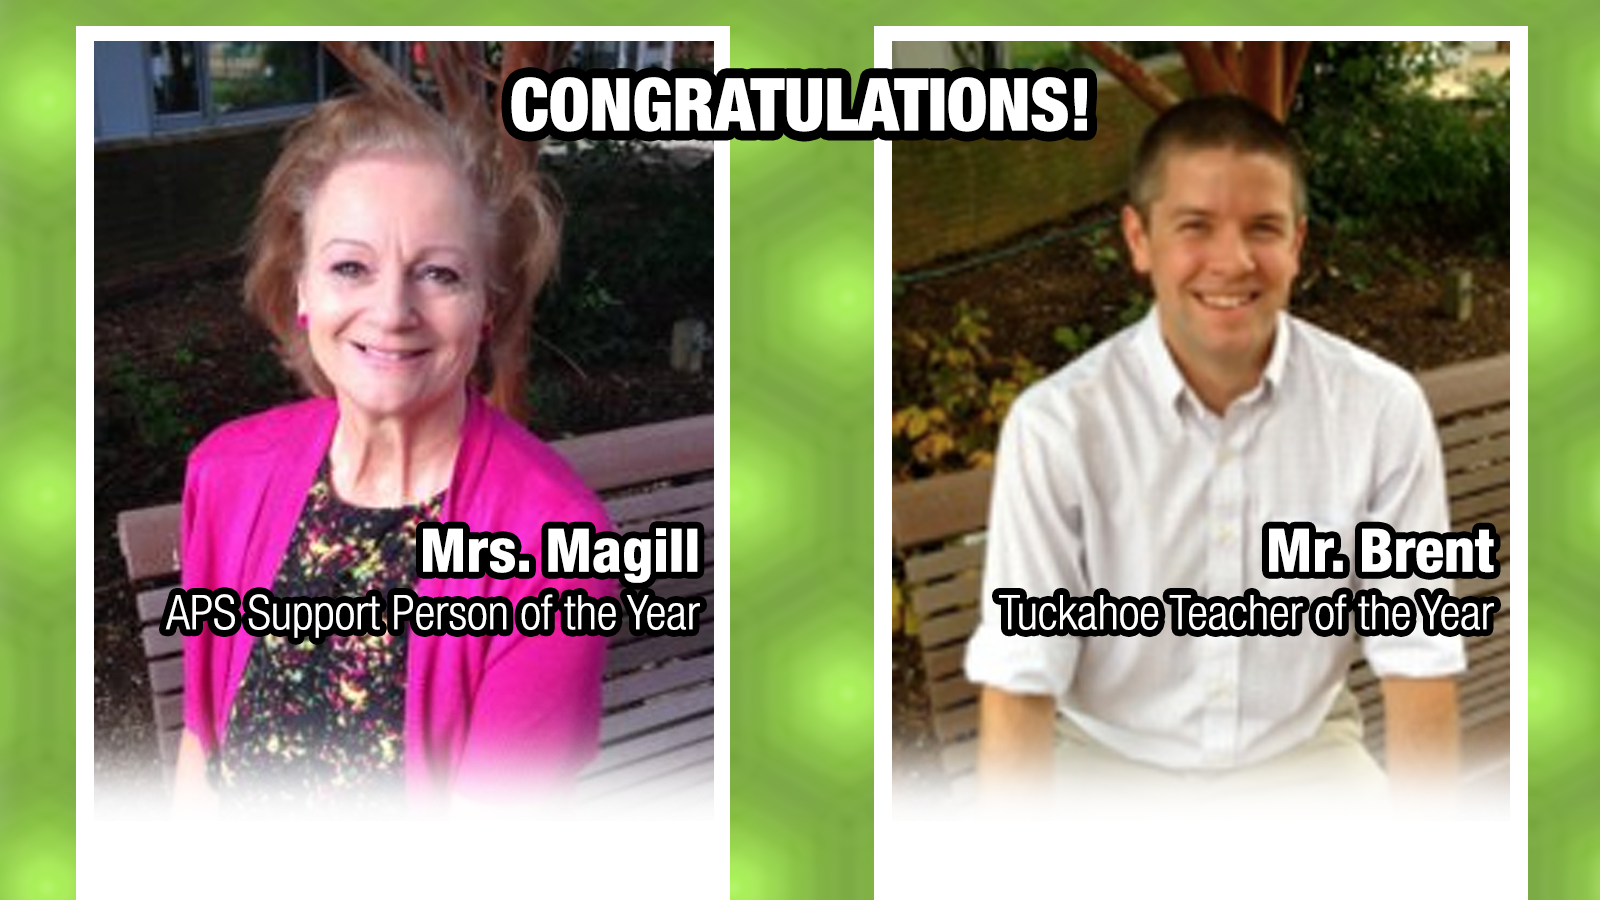 Congratulations to Mr. Brent and Mrs. Magill